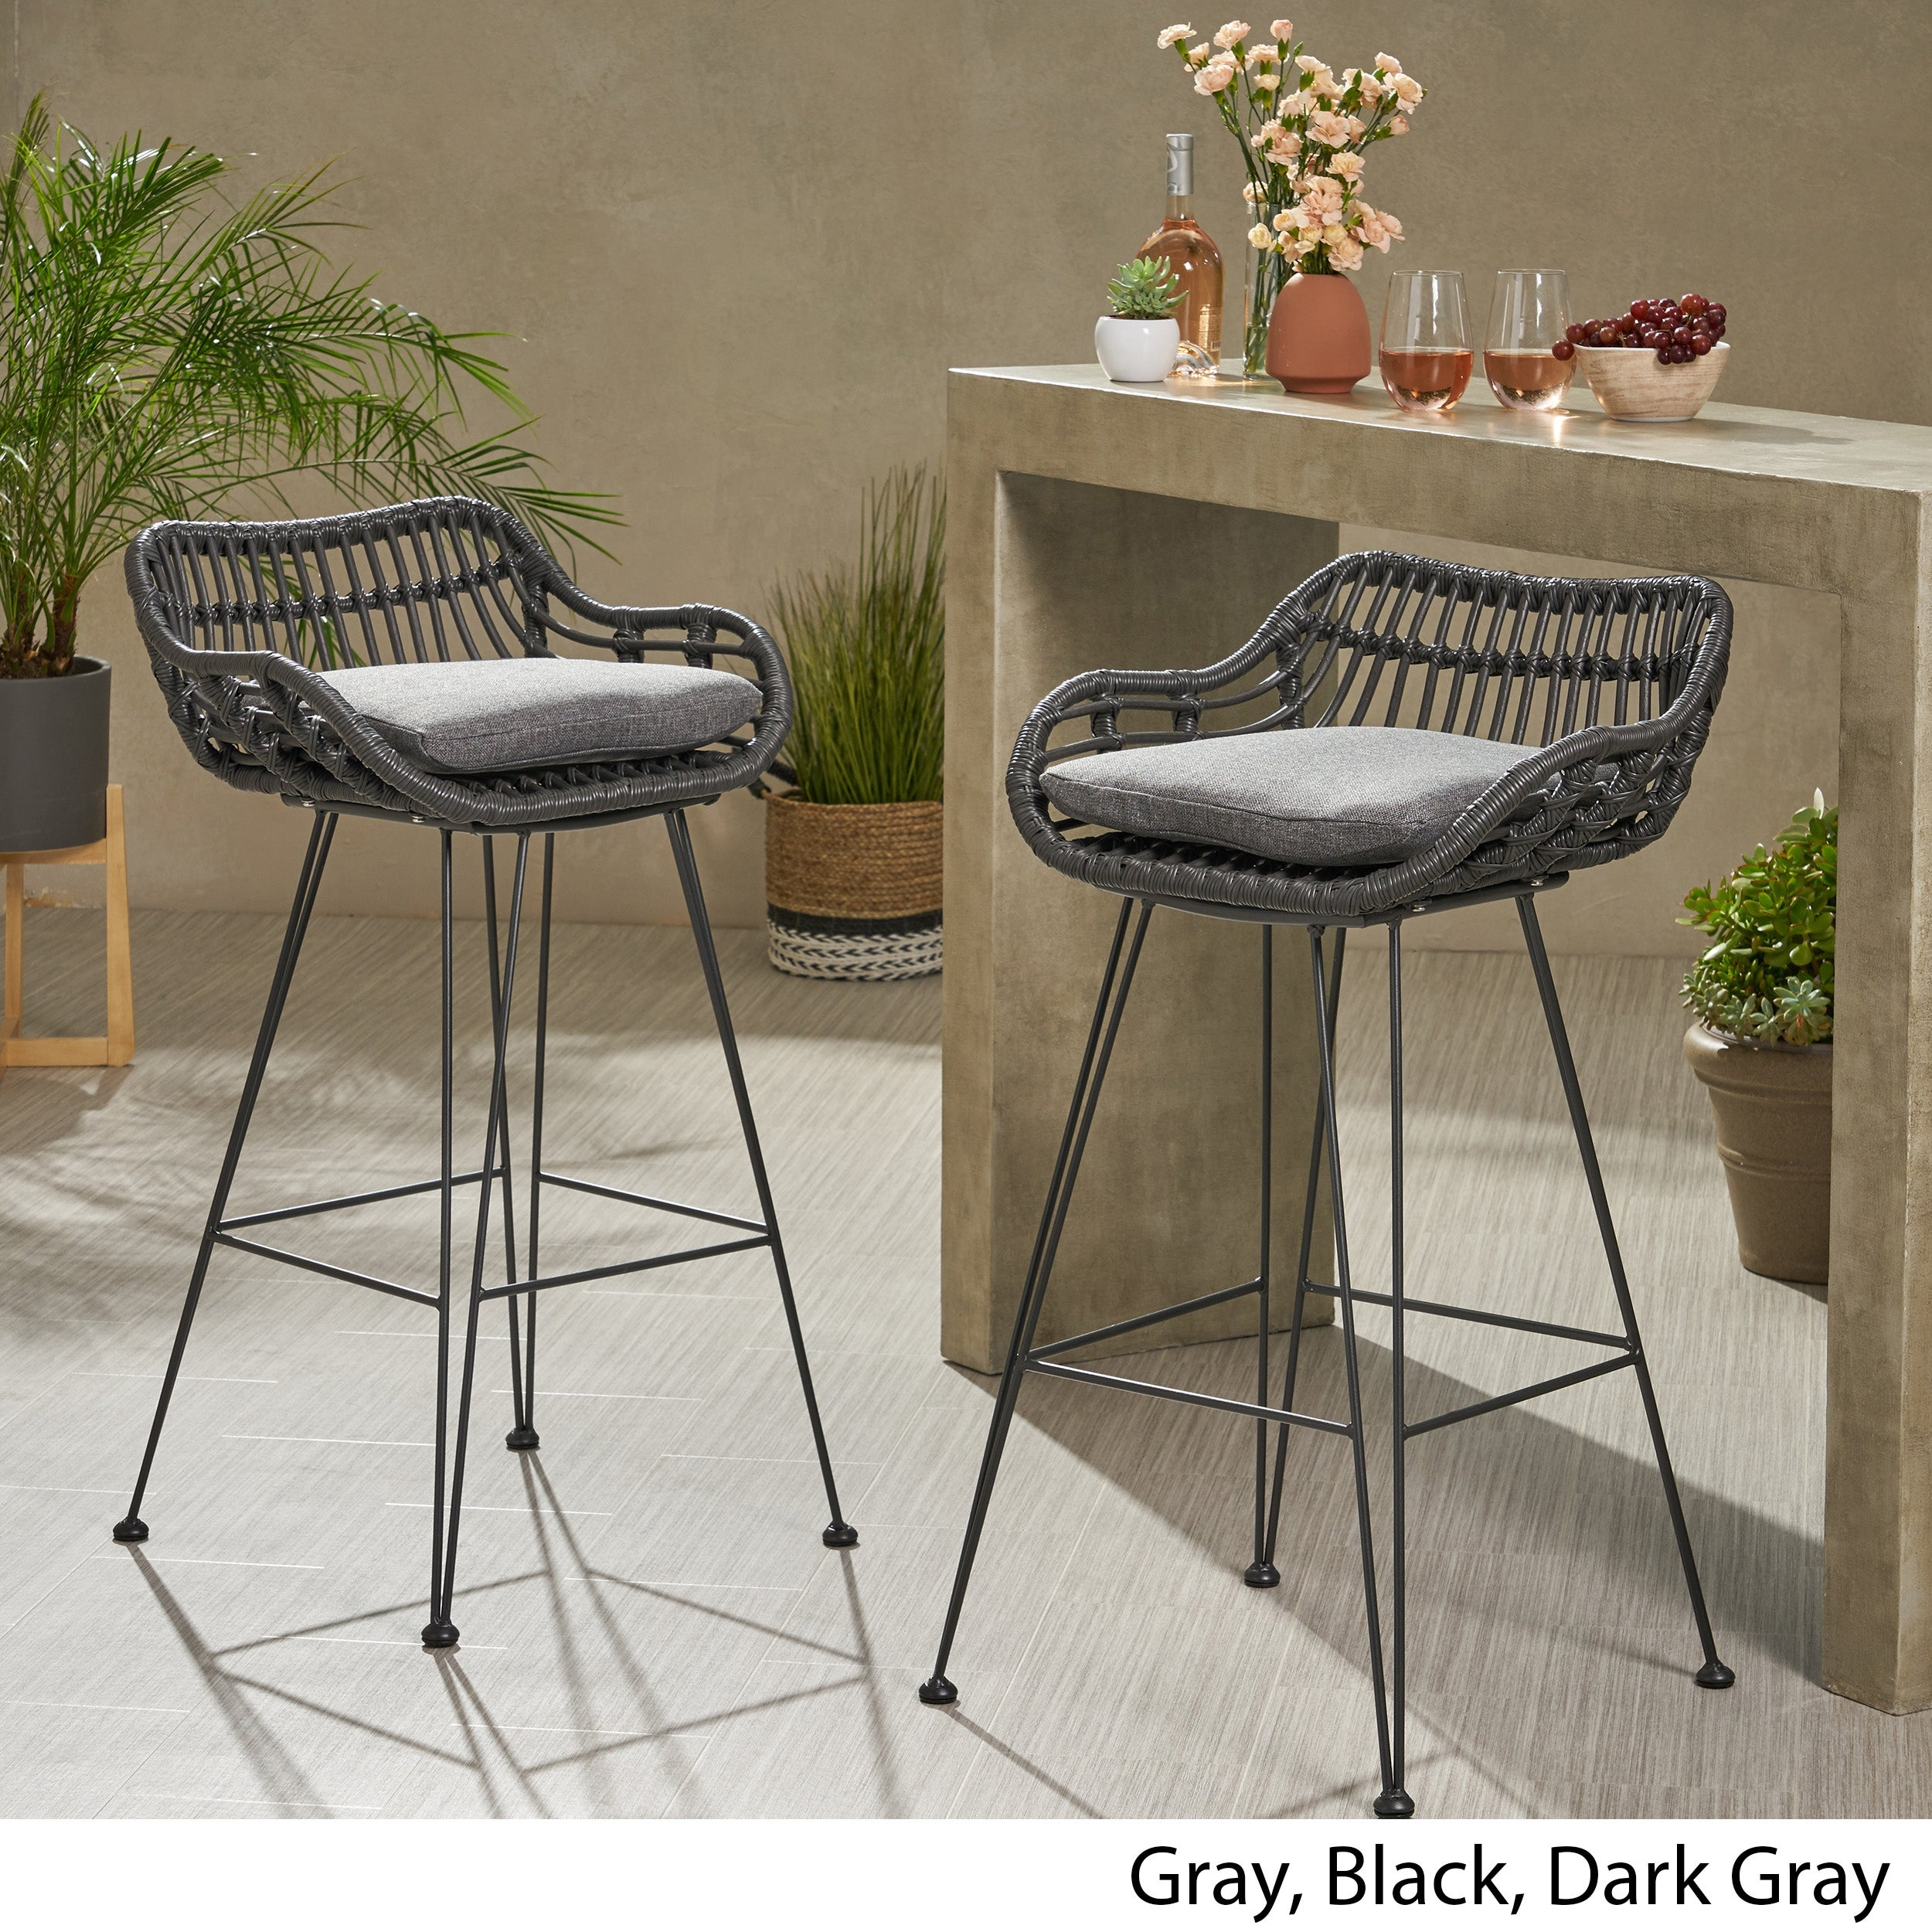 Shop Black Friday Deals On Dale Wicker Bar Stool With Cushion Set Of 2 By Christopher Knight Home On Sale Overstock 28422722